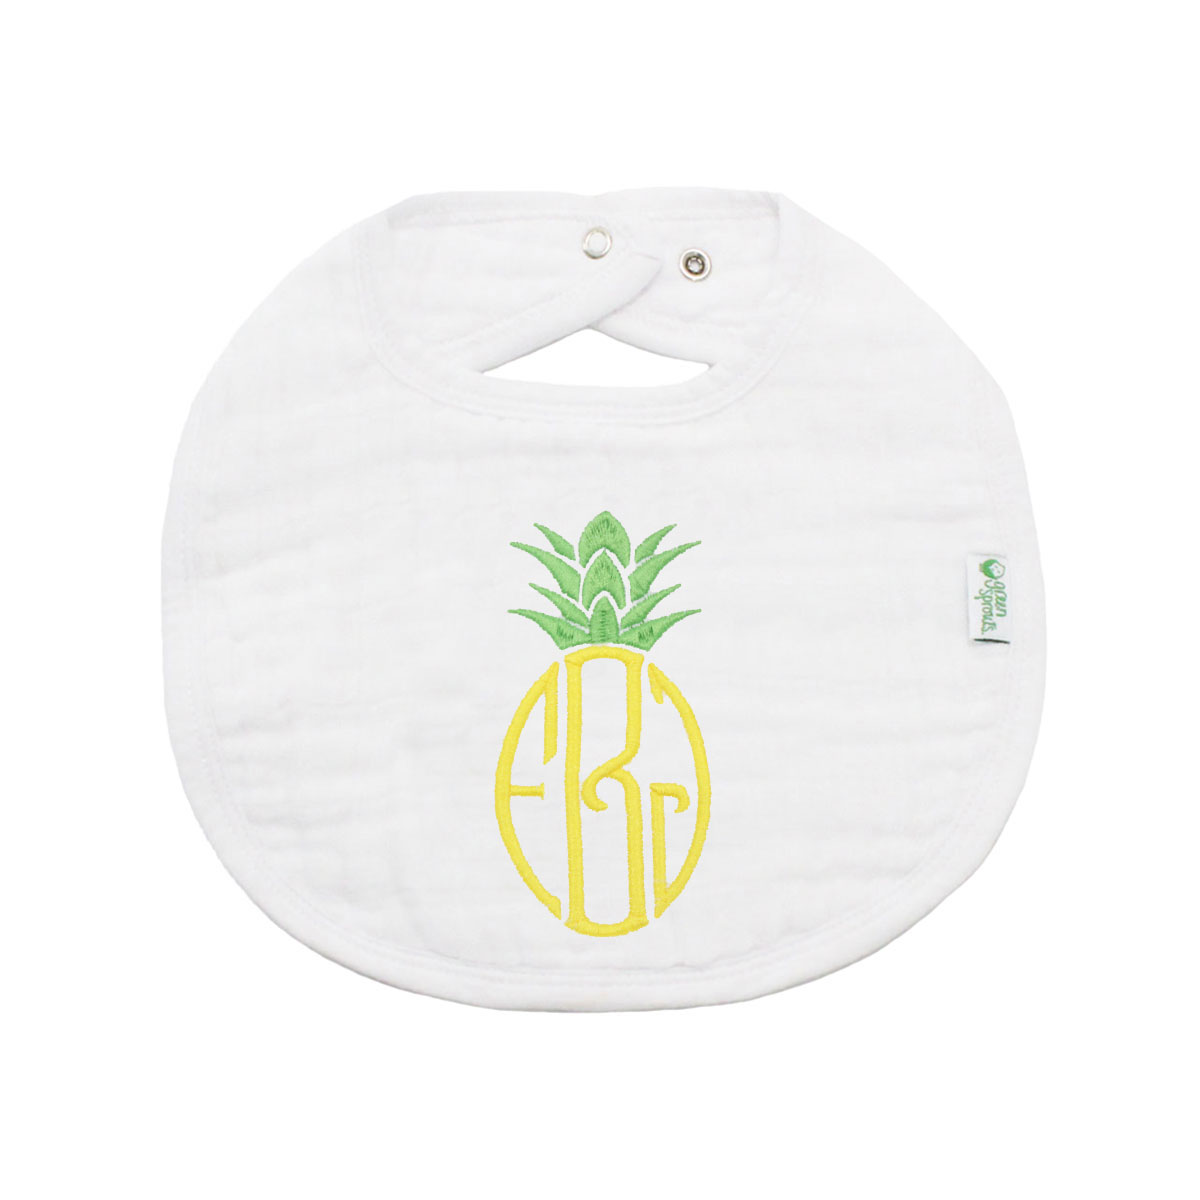 The Tot Organic Cotton White Bib with Personalized Monogram in Pineapple